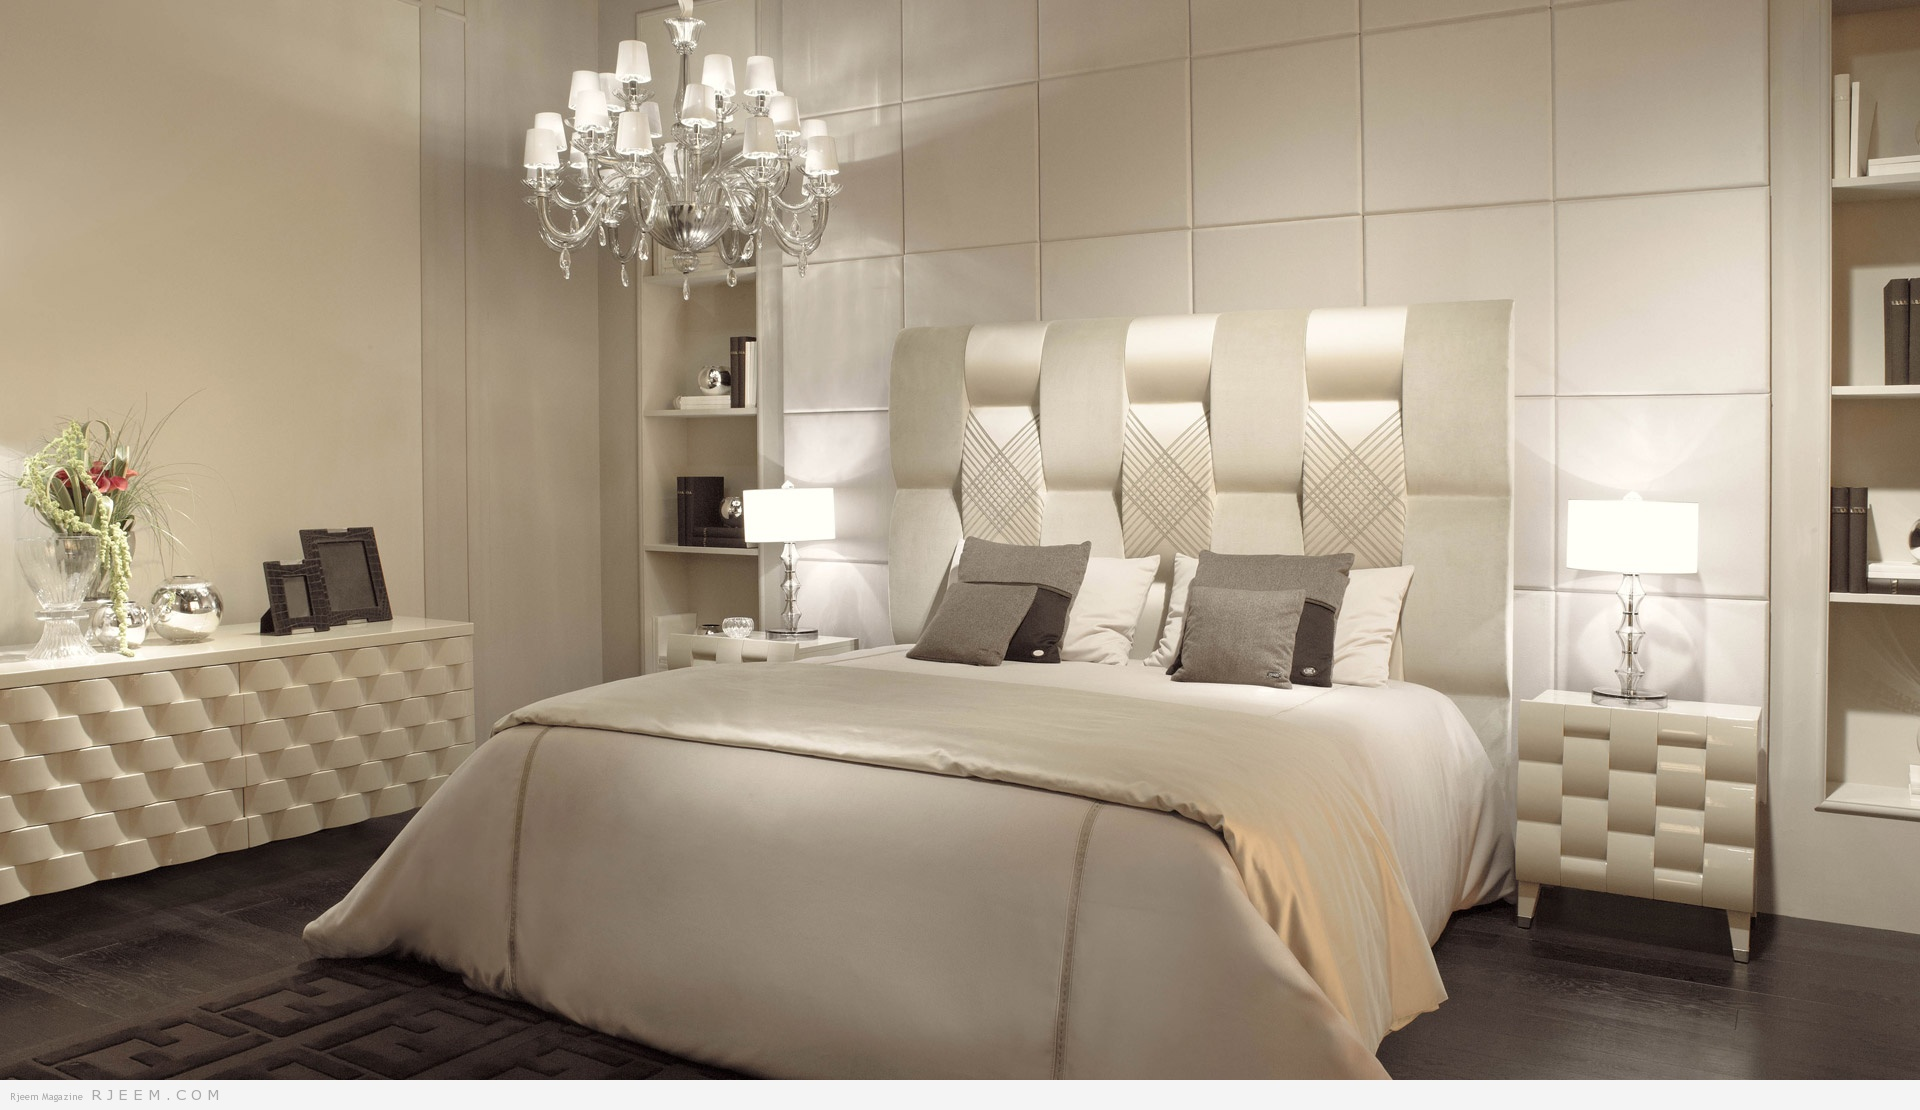 2014 for Bedroom decorating ideas 2015 in pakistan